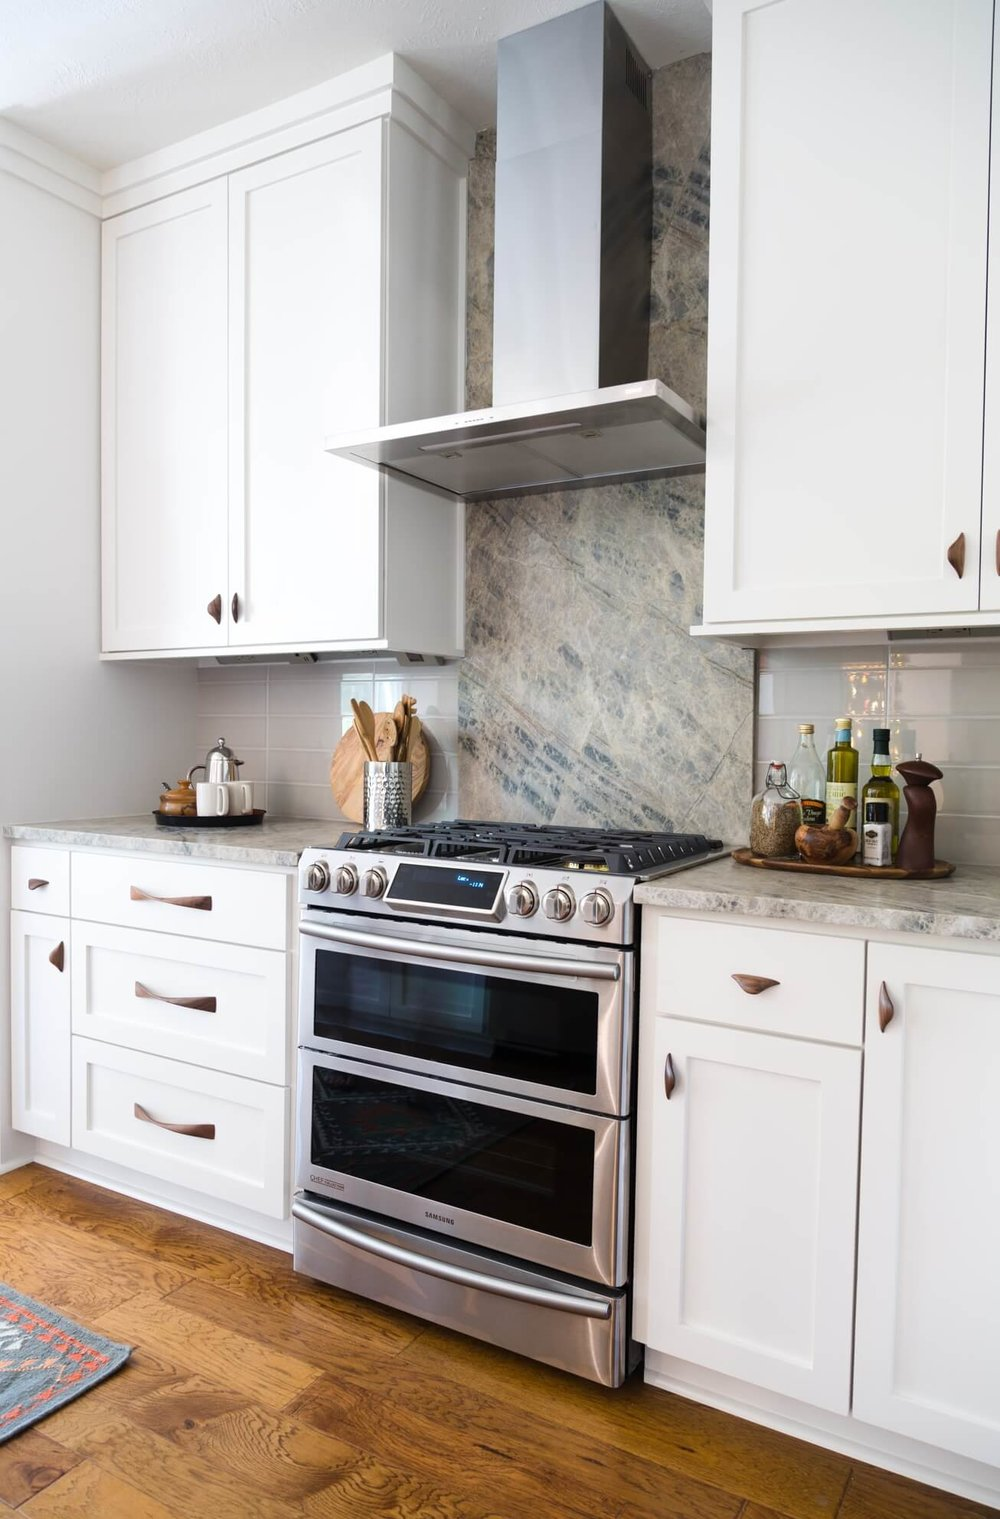 No side backsplash needed here in this  kitchen remodel designed by Carla Aston,  Photographer: Tori Aston